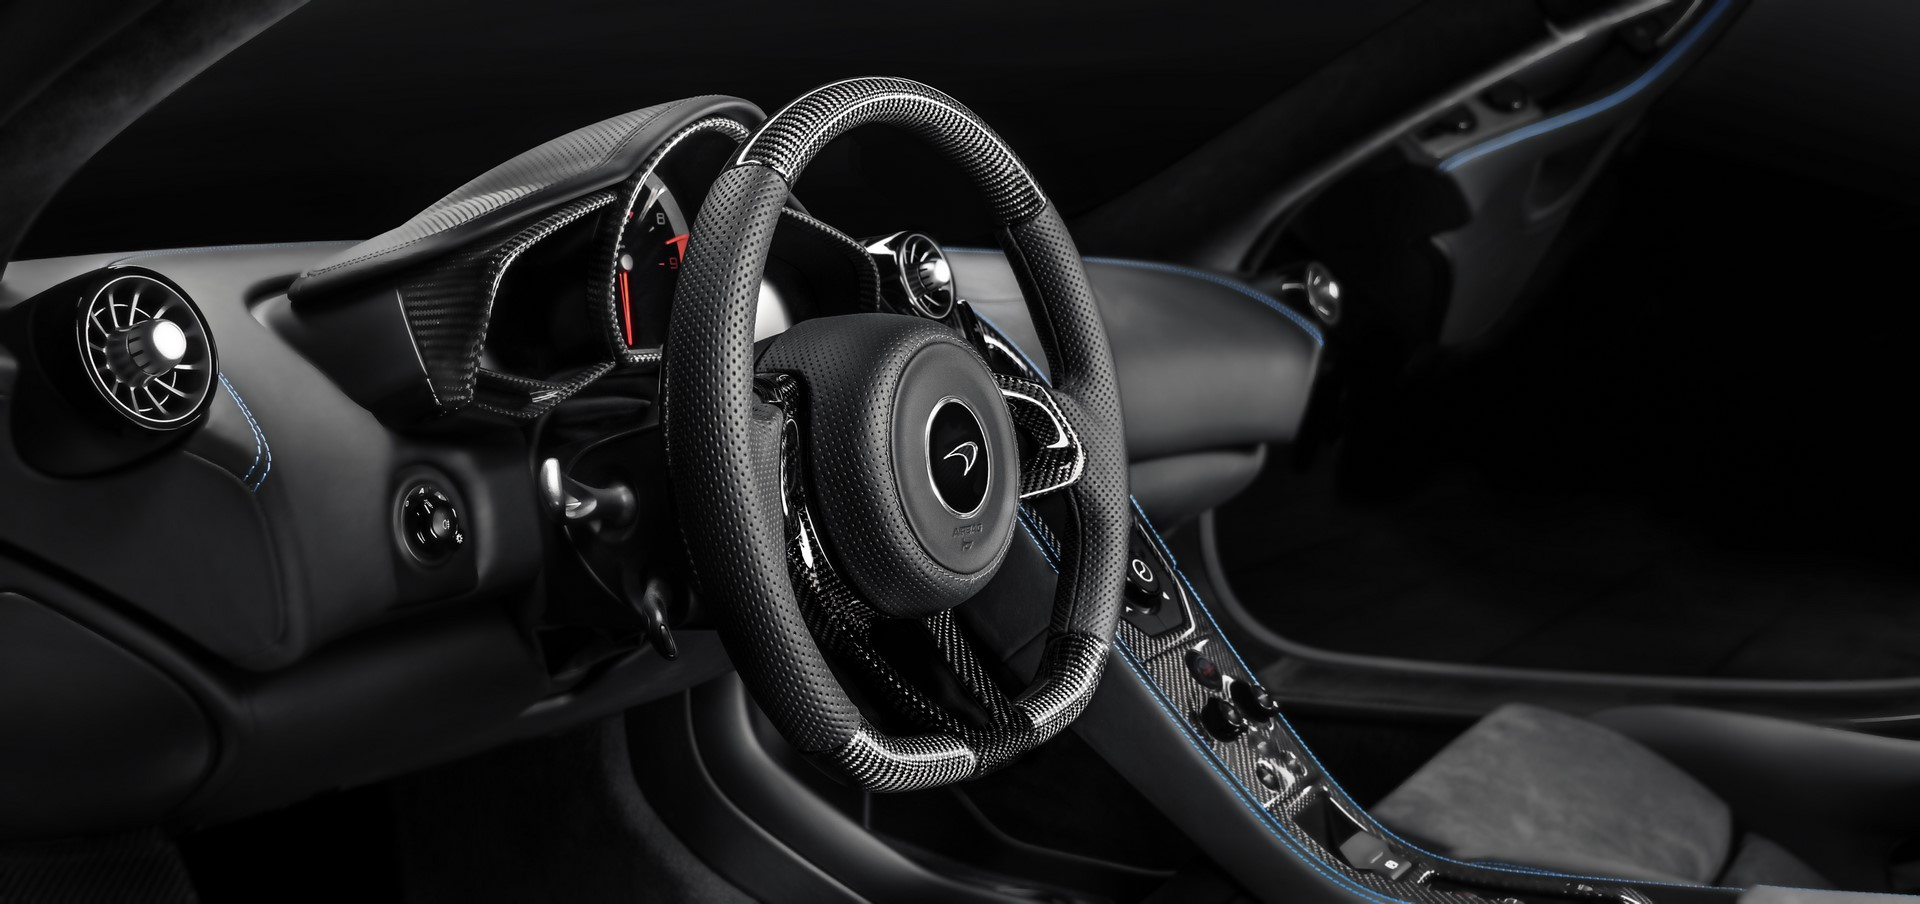 McLaren MSO Defined Options (5)